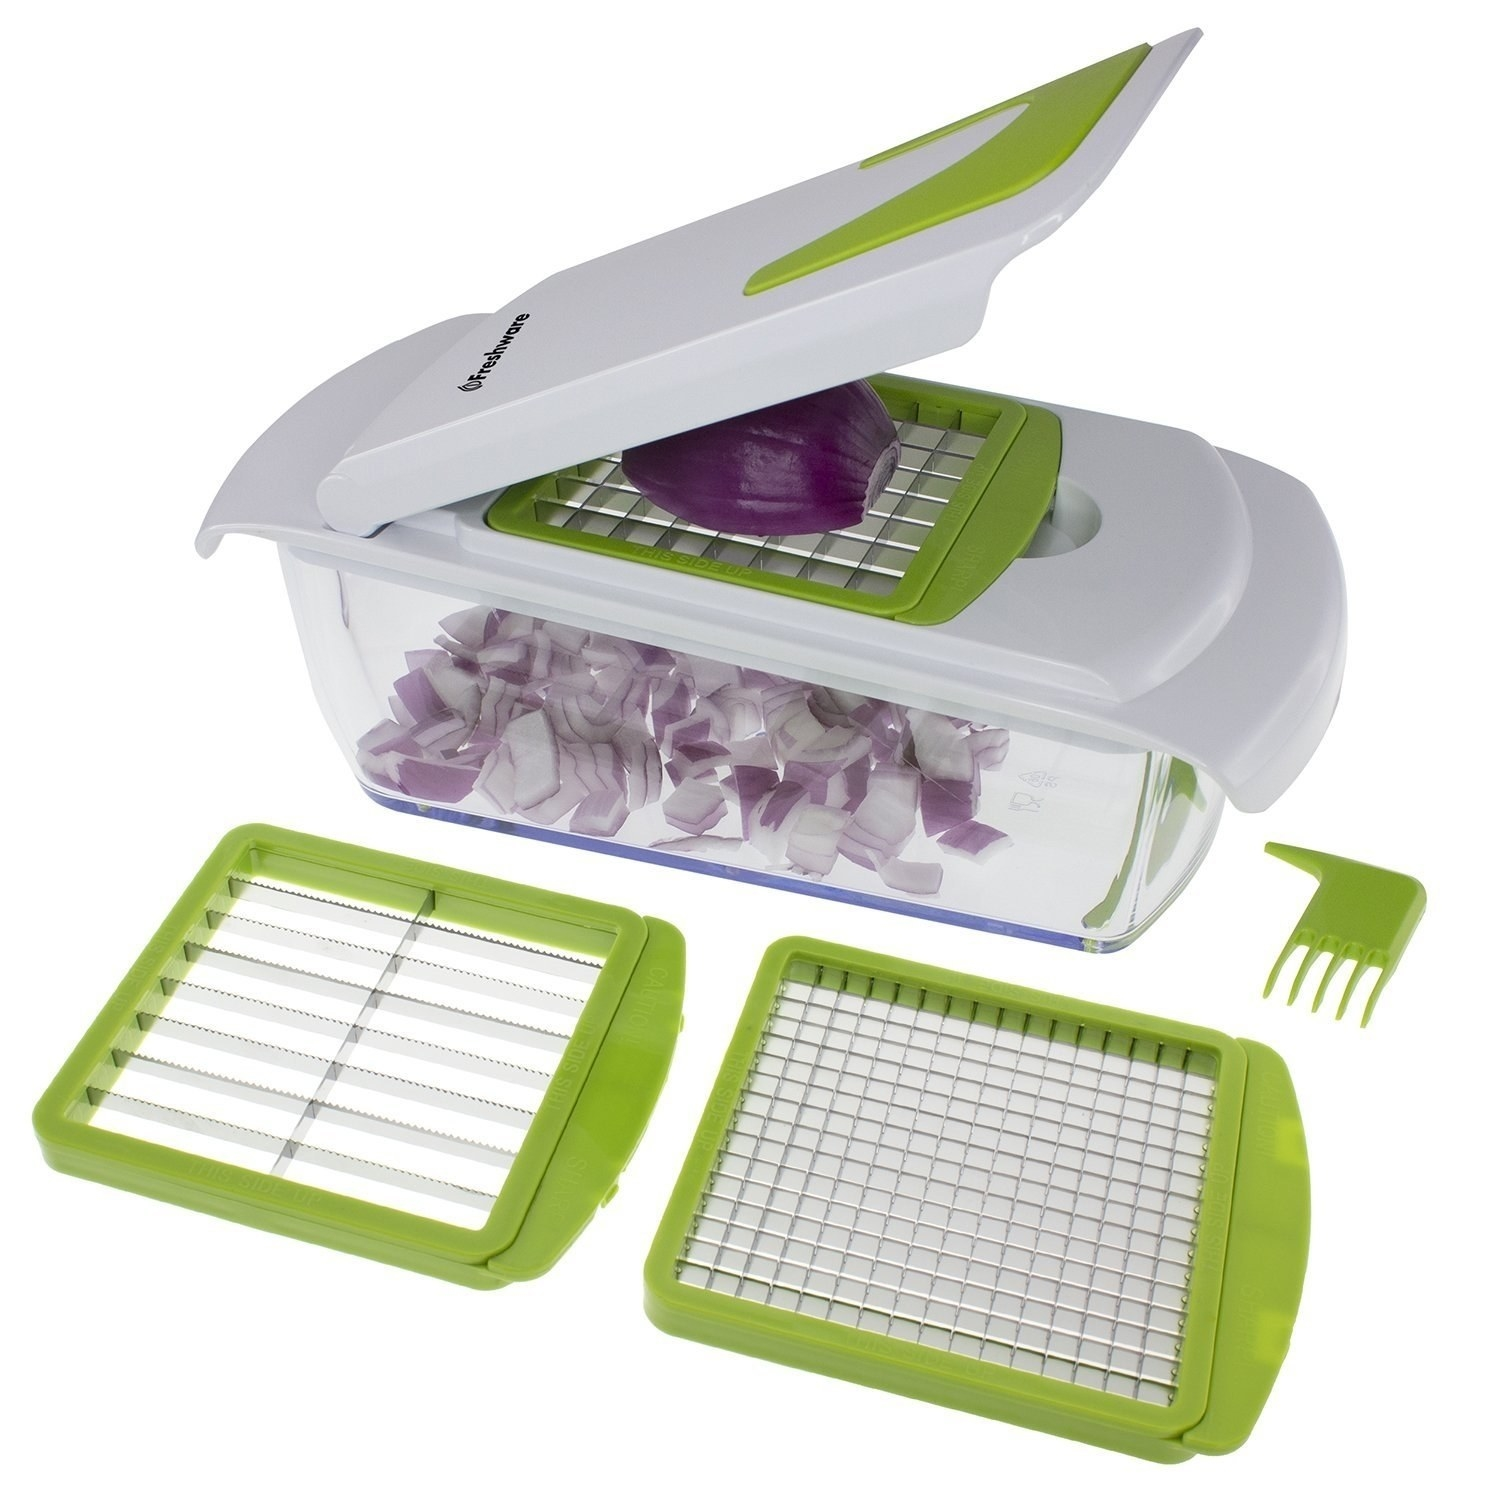 "Get it from Walmart for $16.99 (also available in a seven-in-one chopper for $17.21).Promising review: ""Works great! Exactly like I expected. I bought this mainly for chopping onions. I HATE chopping onions!!! This does a wonderful job!"" —Chris48195"